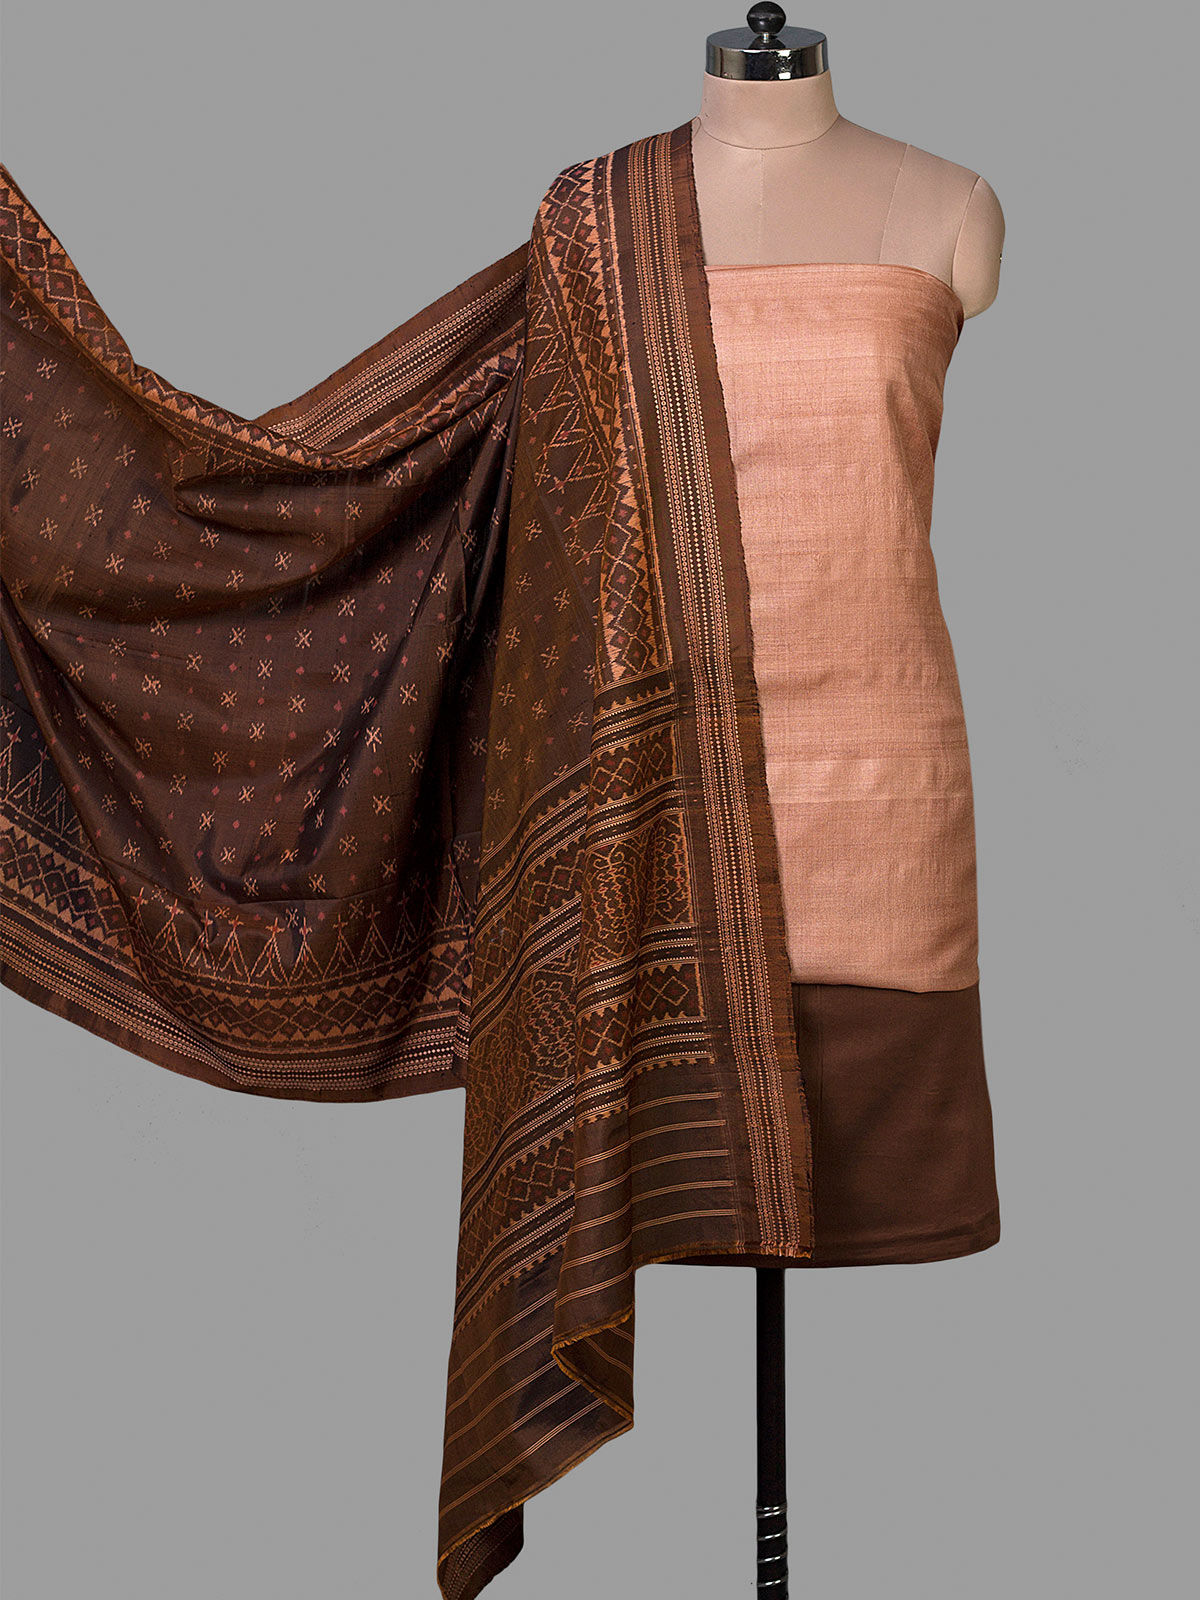 Black Tussar Silk Unstiched Dress Material with Ikat silk  Dupatta